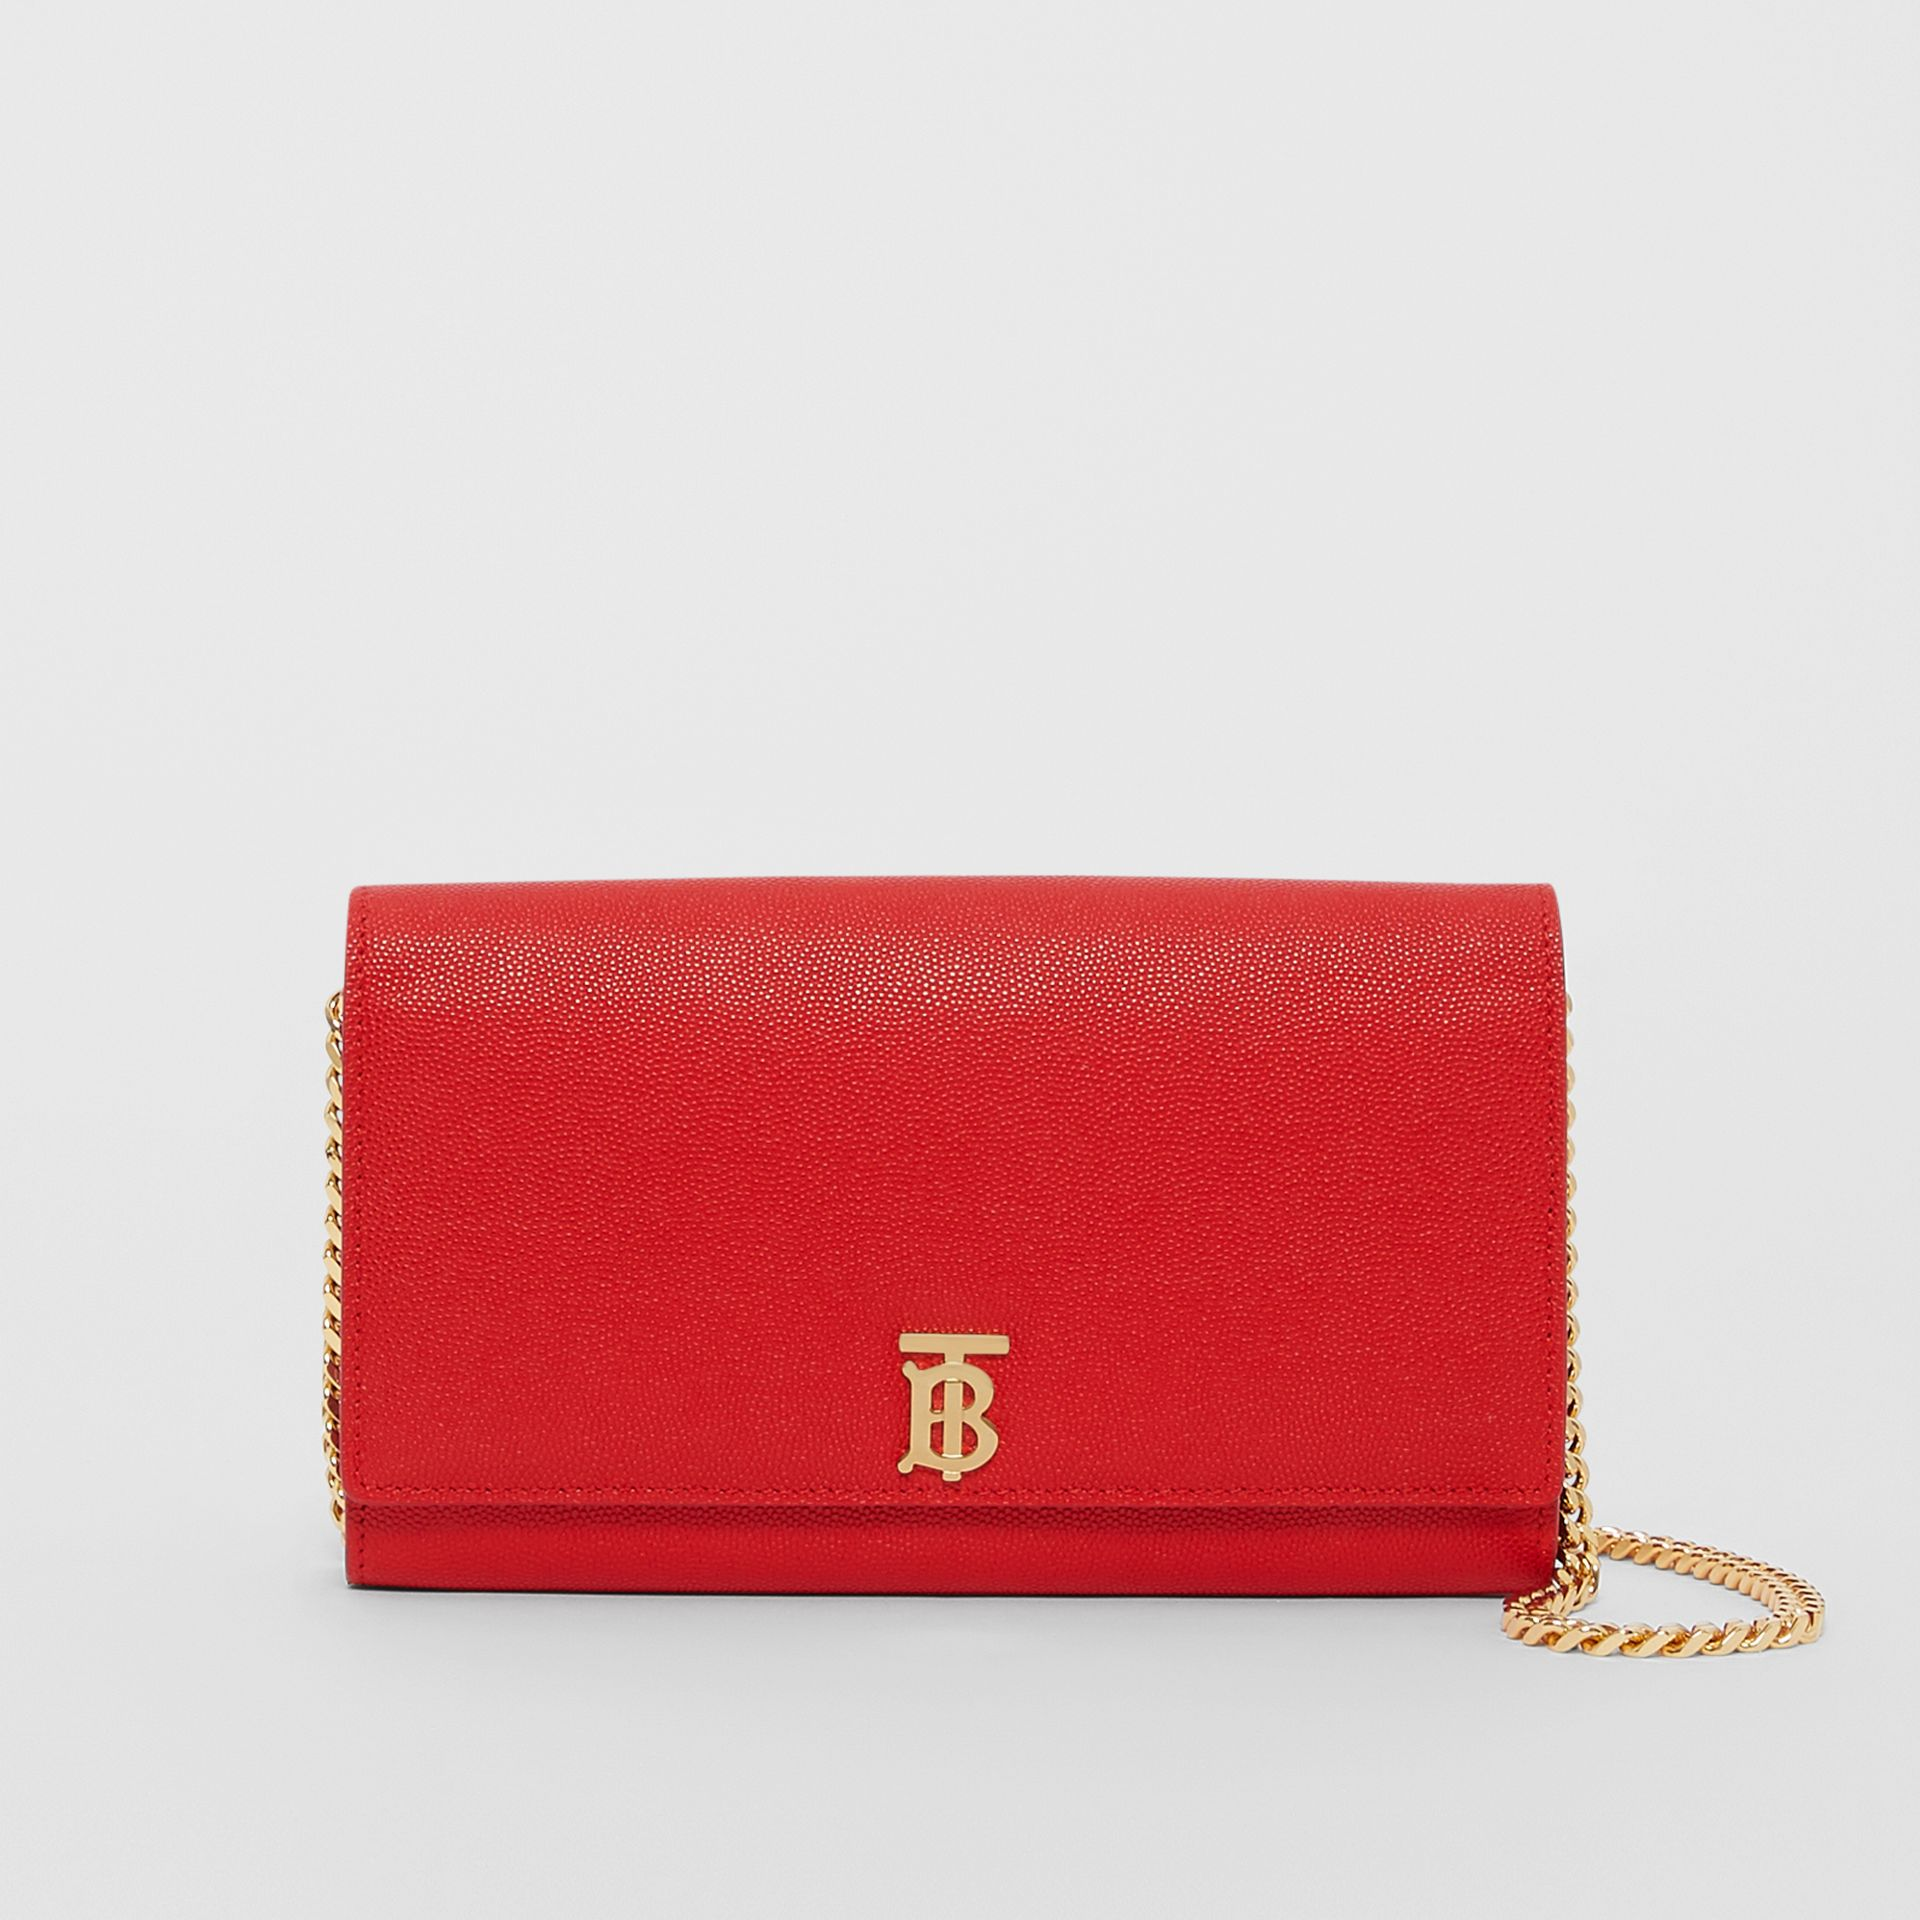 Monogram Motif Leather Wallet with Detachable Strap in Bright Red - Women | Burberry United Kingdom - gallery image 0